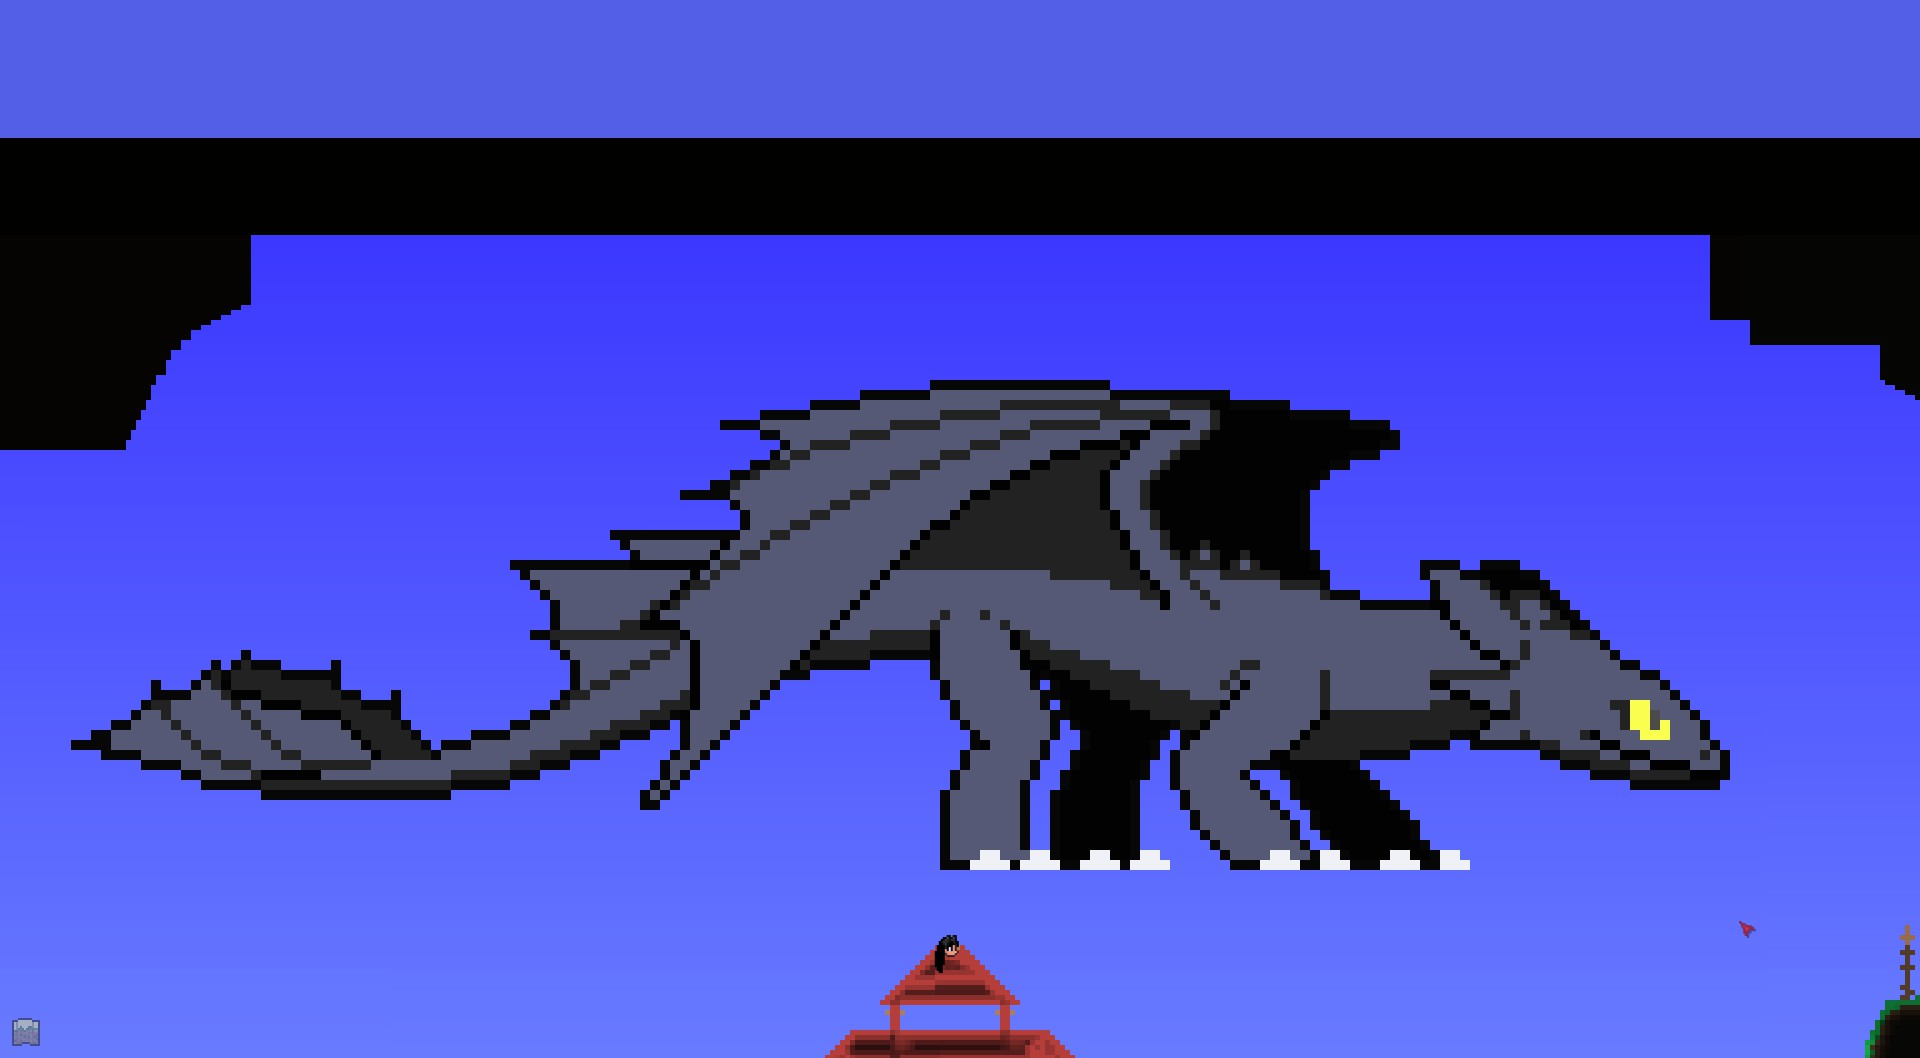 With The Upcoming 1.3 Patch, (30th) I Guess Itu0027ll Be Nice To Revive This  Thread With My Toothless Pixel Art